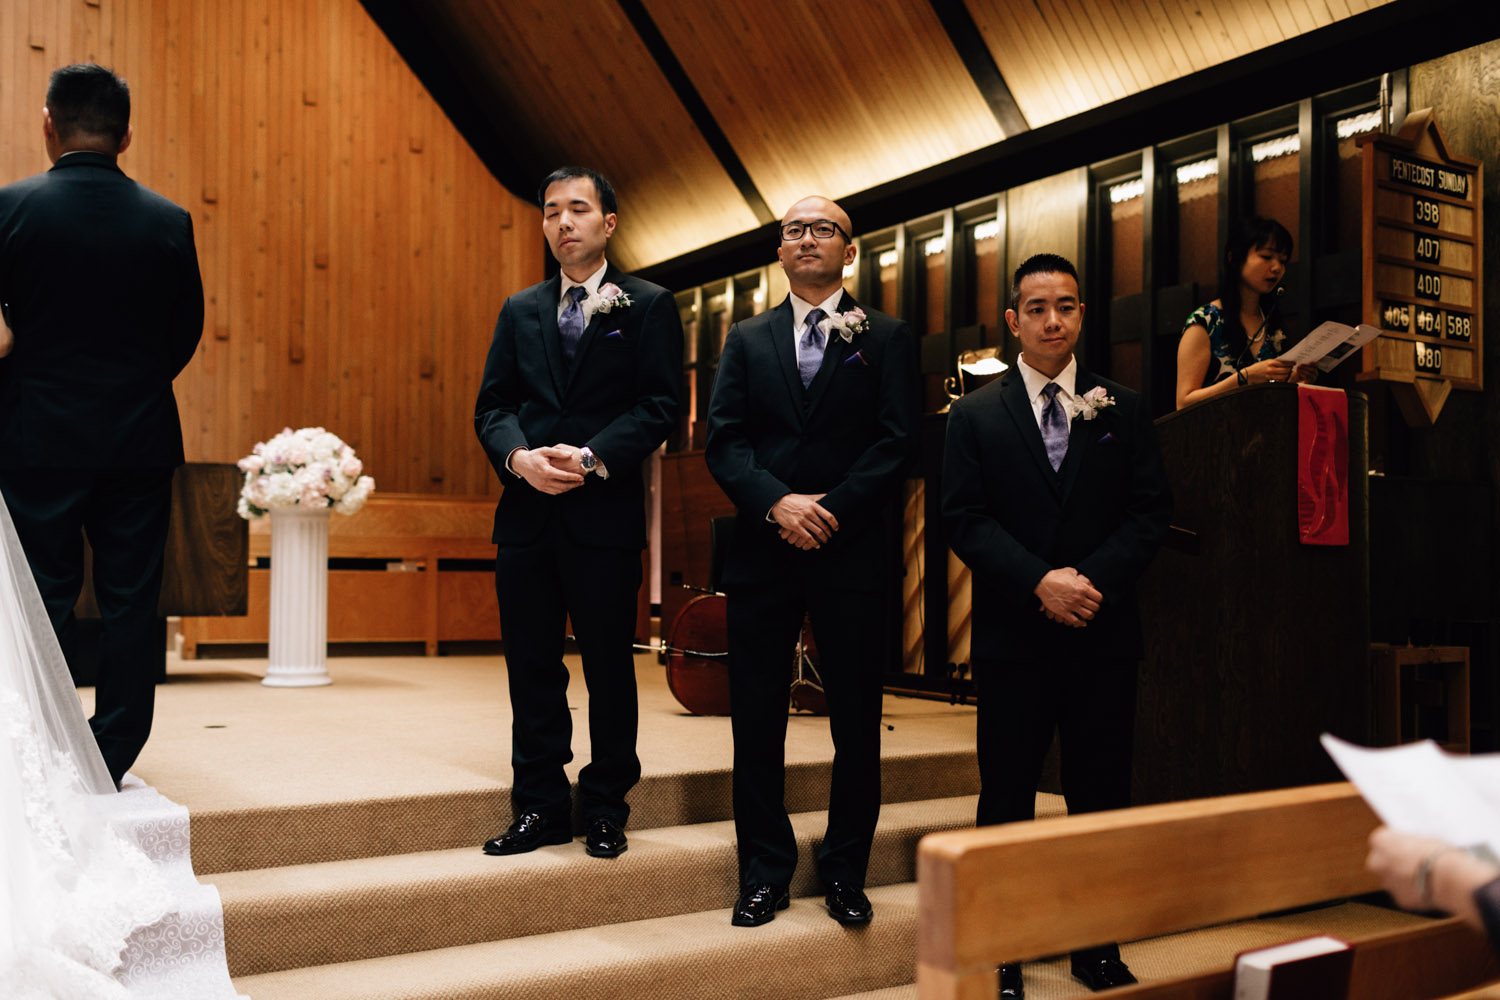 redeemer lutheran church vancouver wedding photography